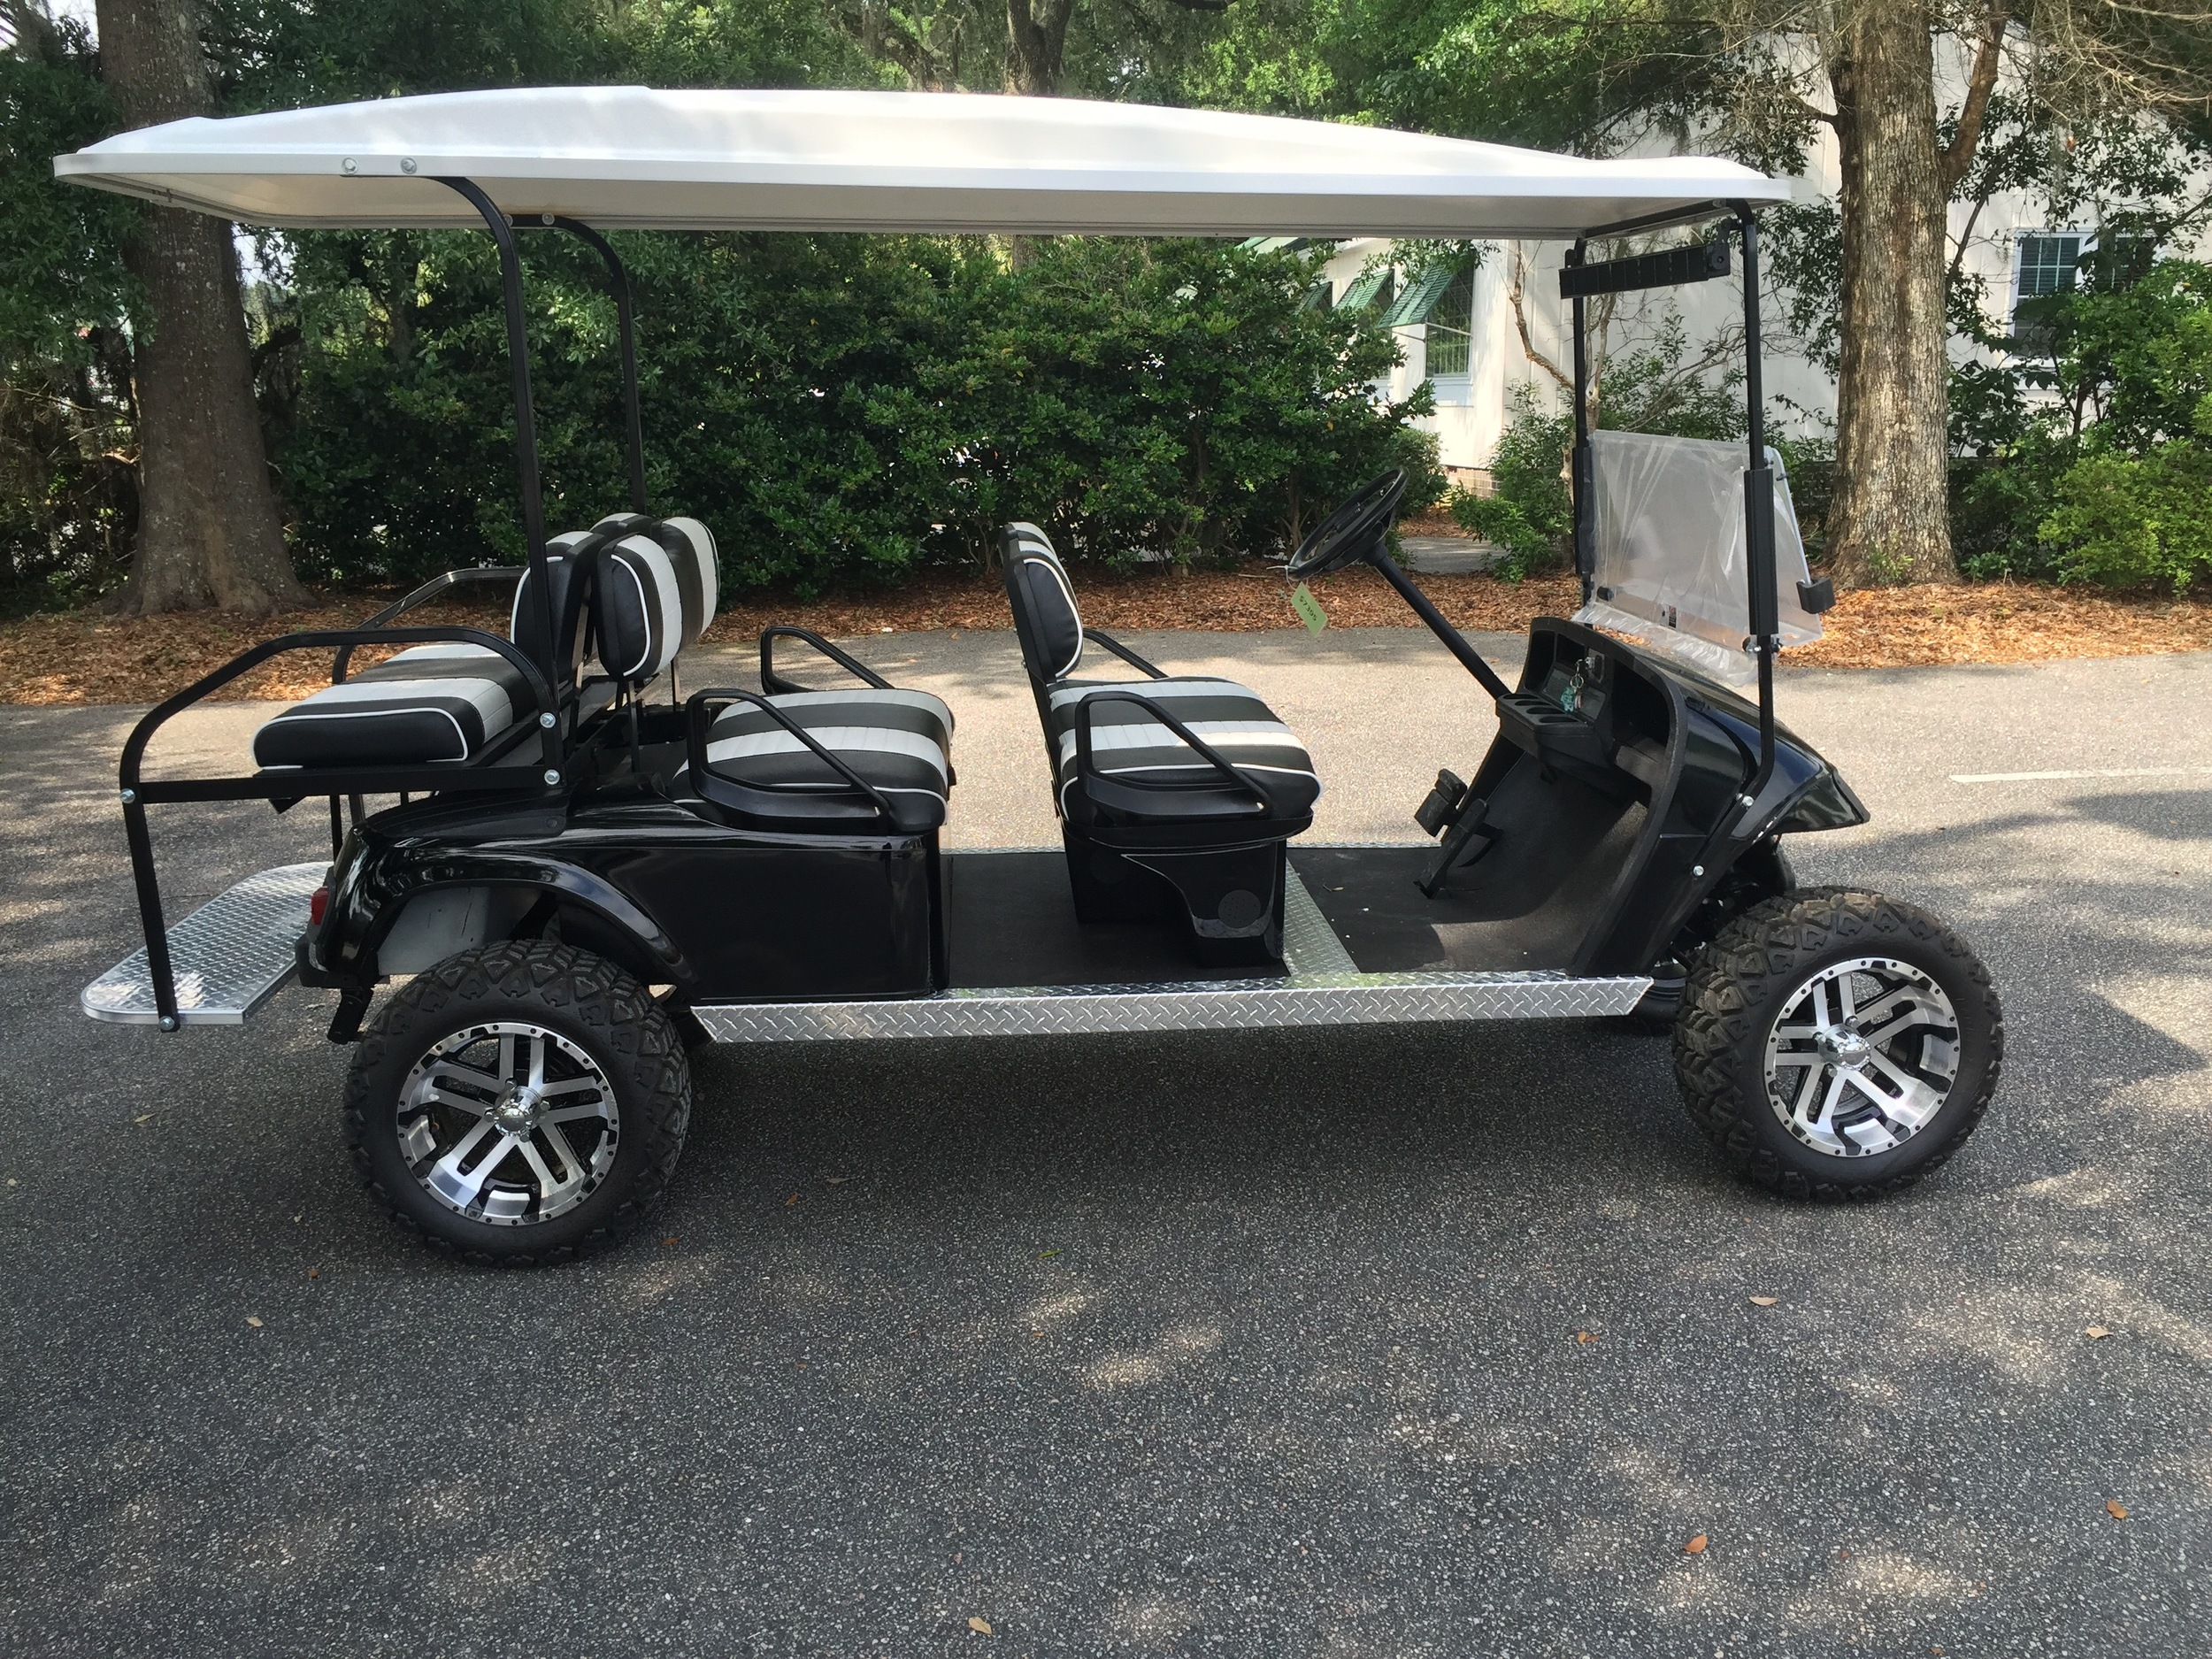 Black EZGO Lifted Trolley  Black/white seats, white top, new batteries, high speed code, LED lights, Backlash (23x10x14) tires, state of charge meter, mirror, and flip windshield